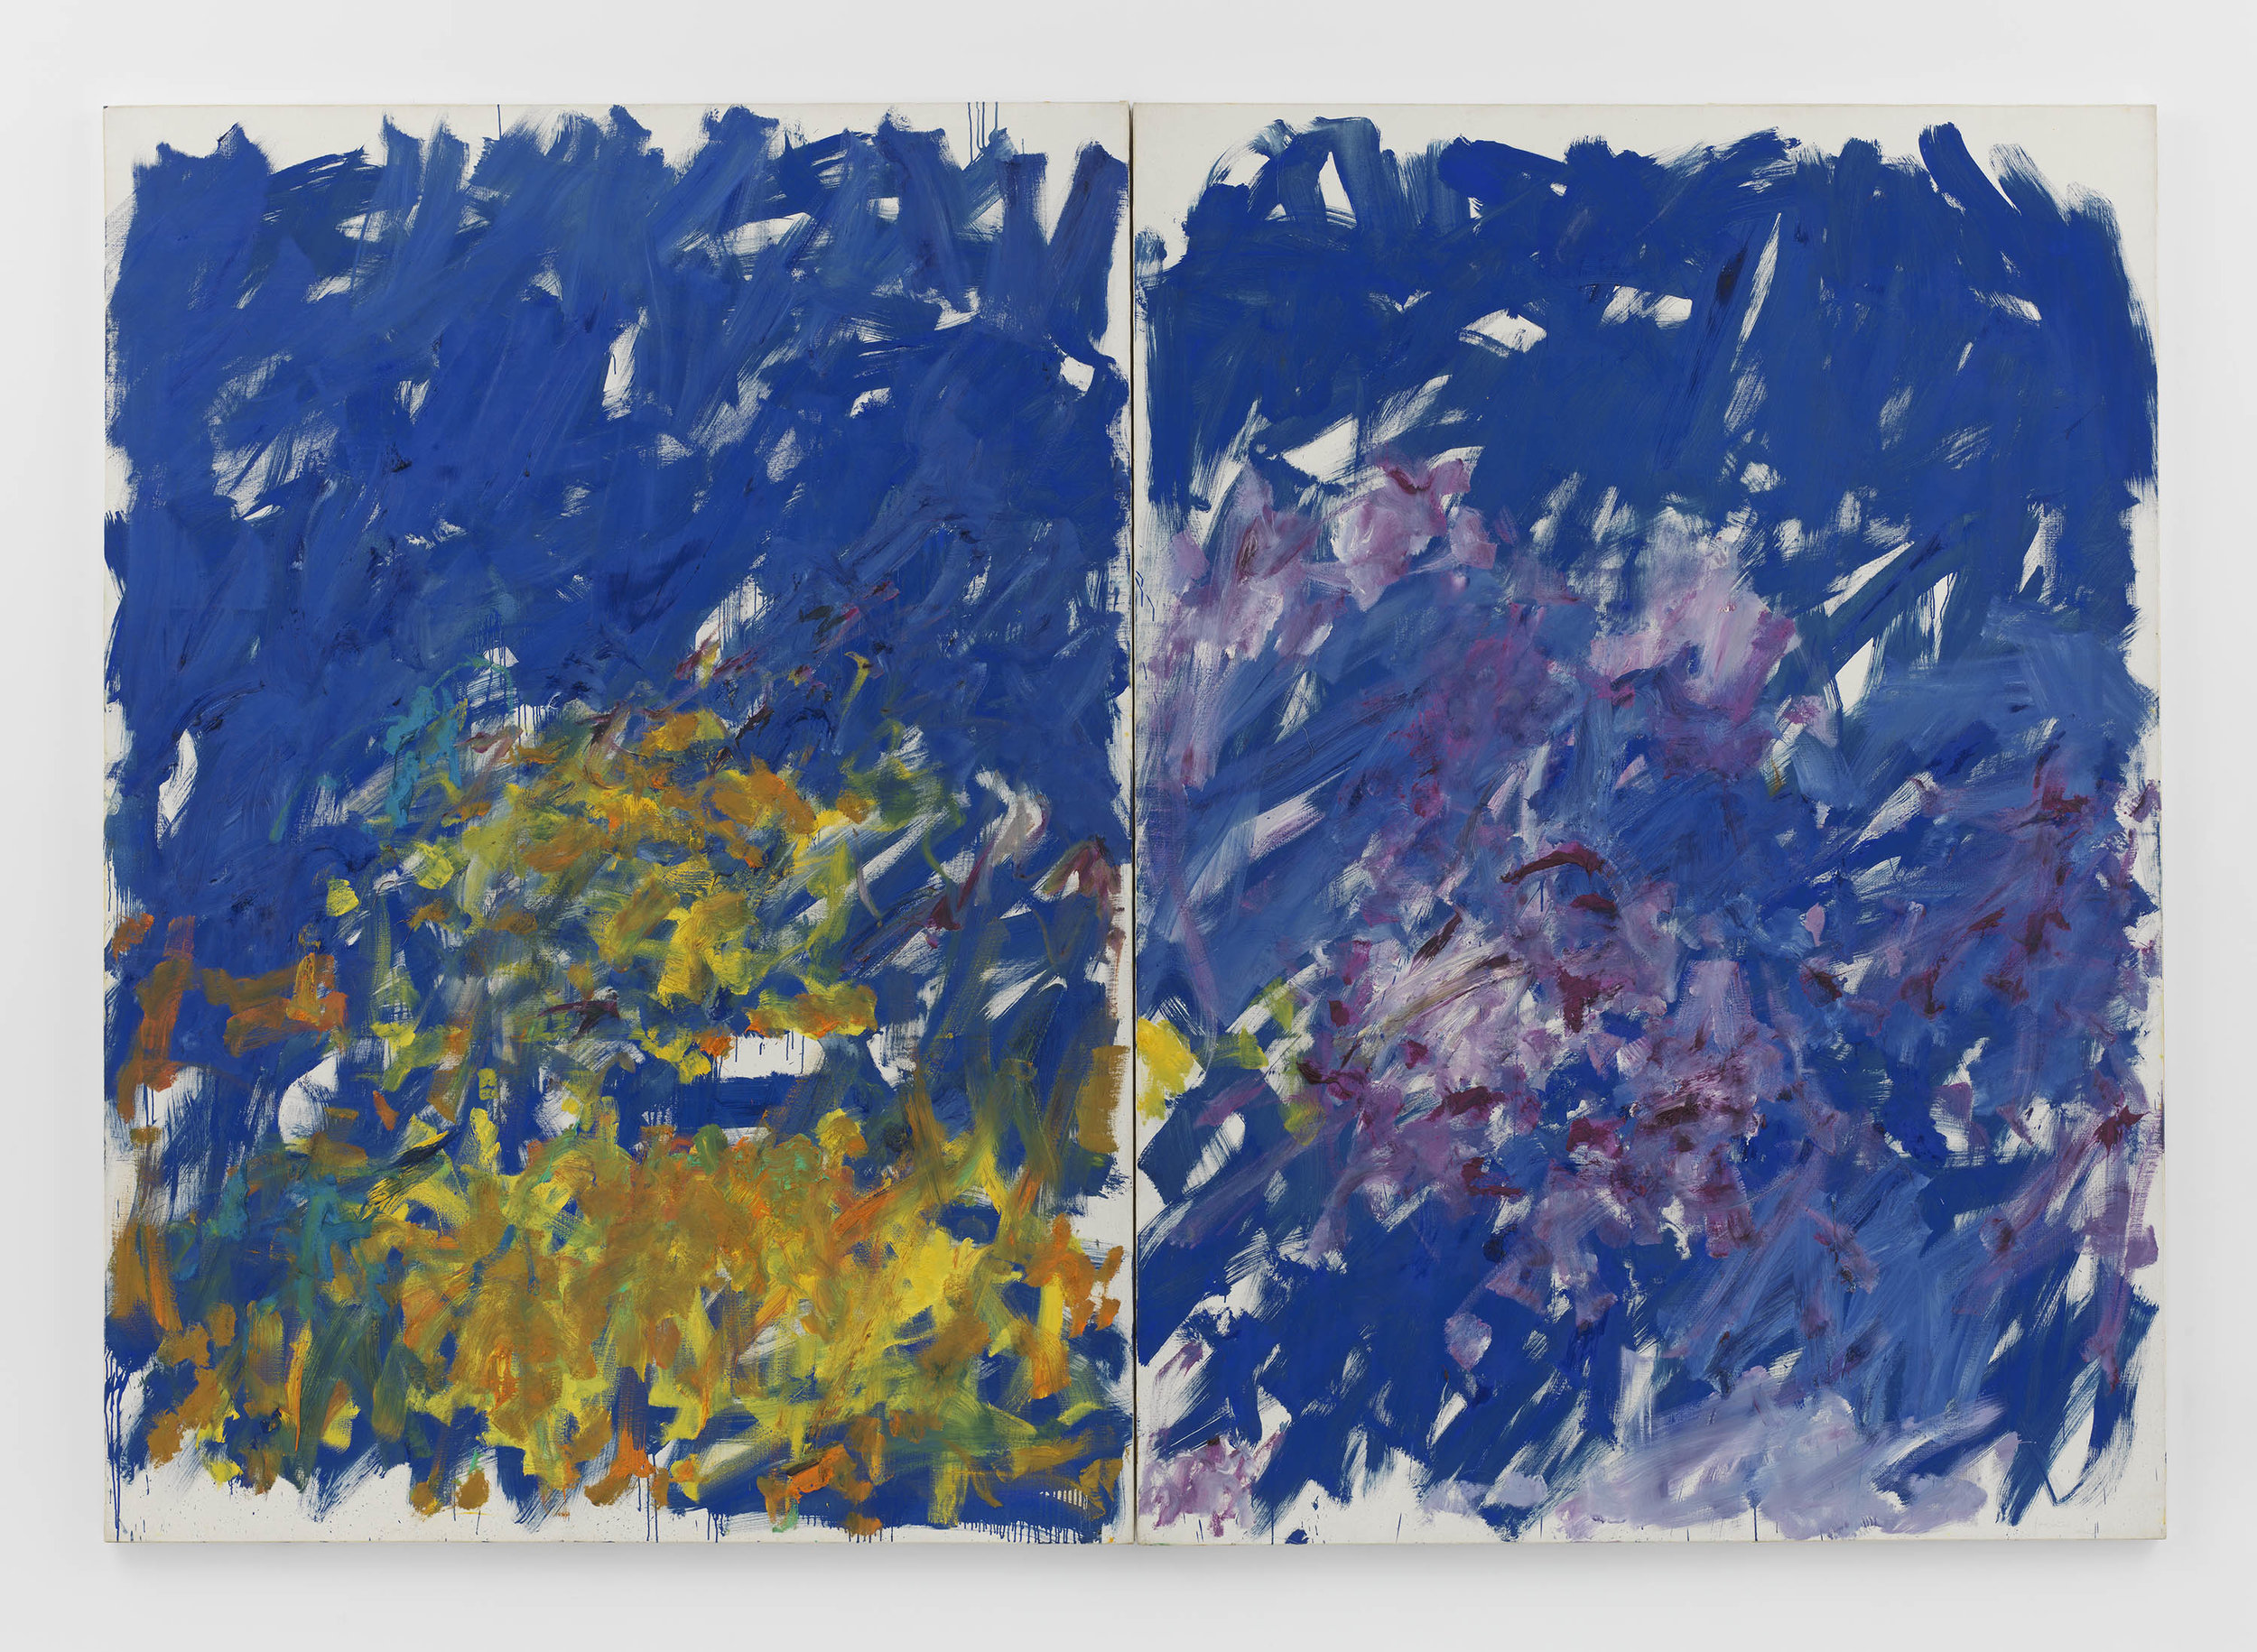 Joan Mitchell ,  Row Row , 1982, Oil on canvas in two (2) parts, 110 1/4 x 157 7/8 inches, 280 x 401 cm